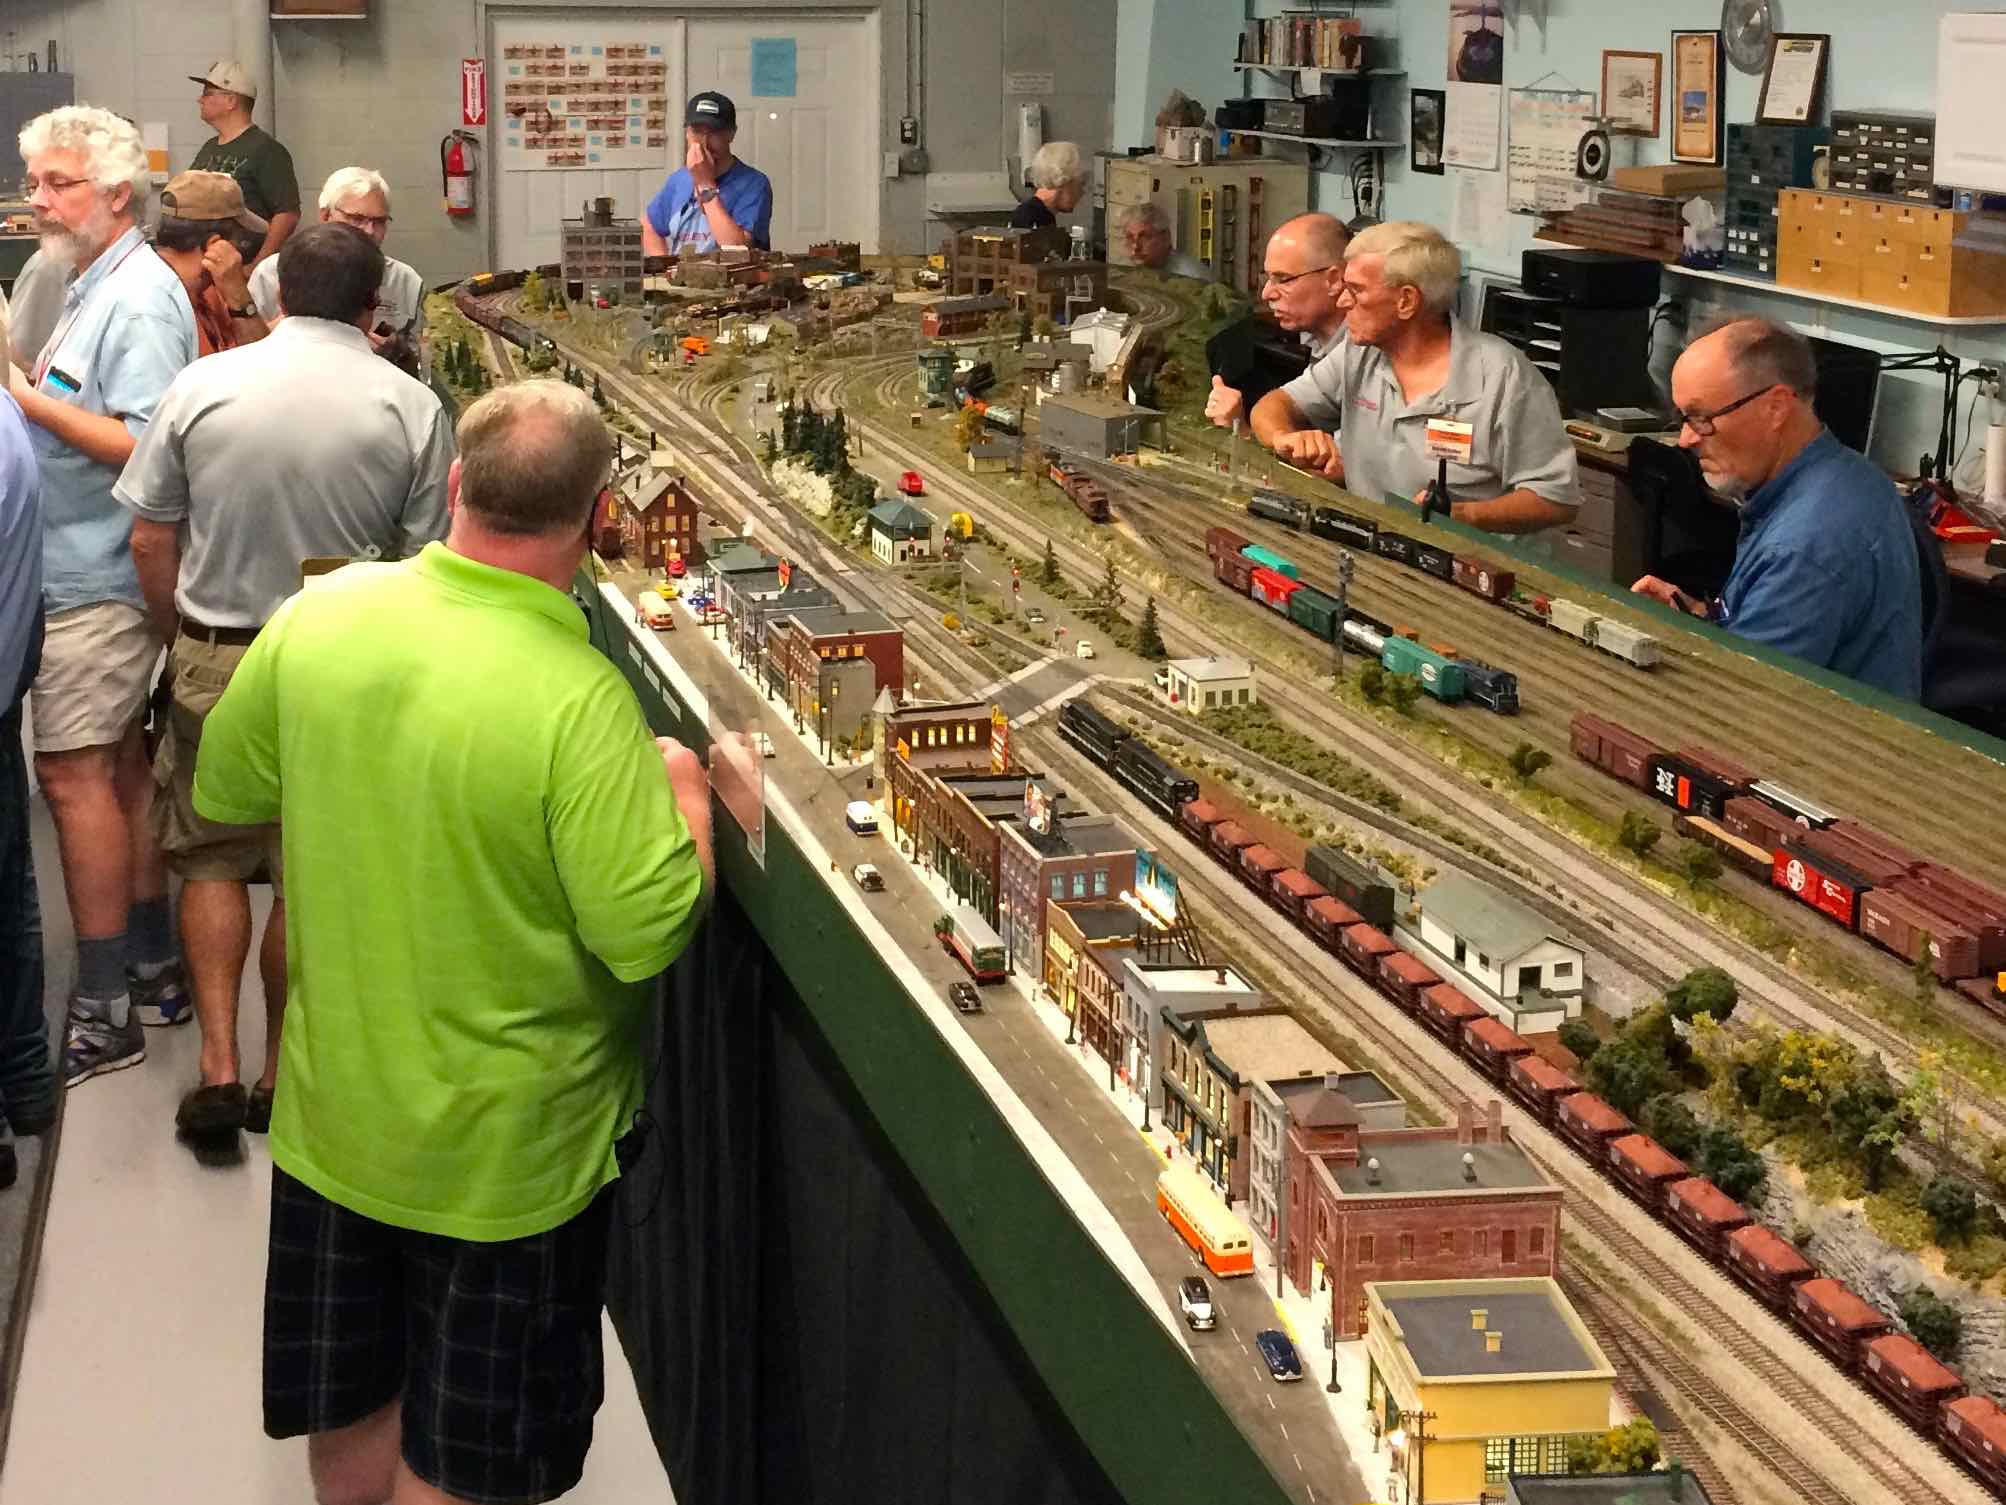 Swanky Operation Slideshow Central Florida Railroad Modelers Colonial Photo Hobby Hours Hobby Film Developing Colonial Photo dpreview Colonial Photo And Hobby